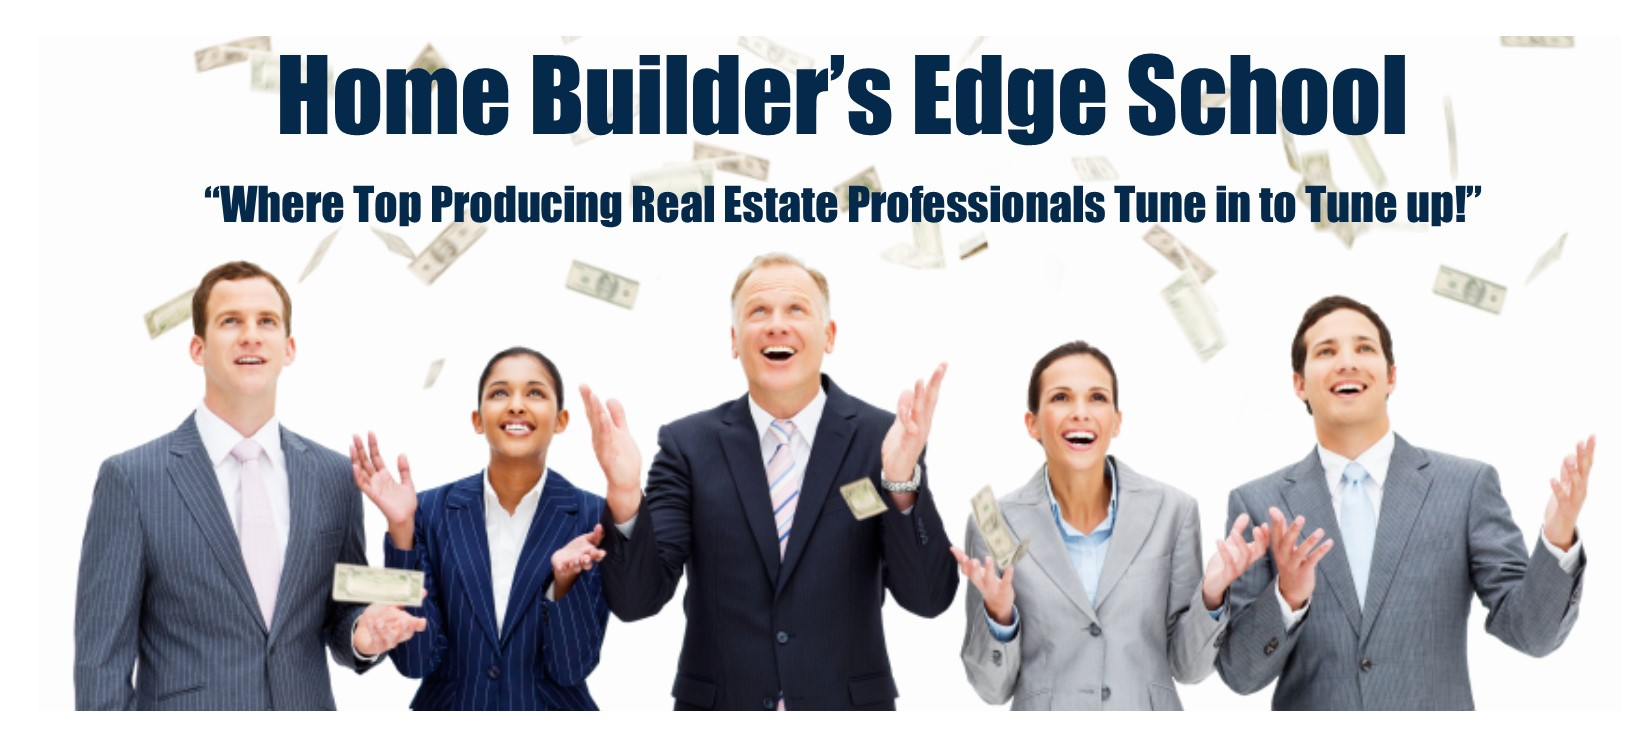 Home Builder's Edge School